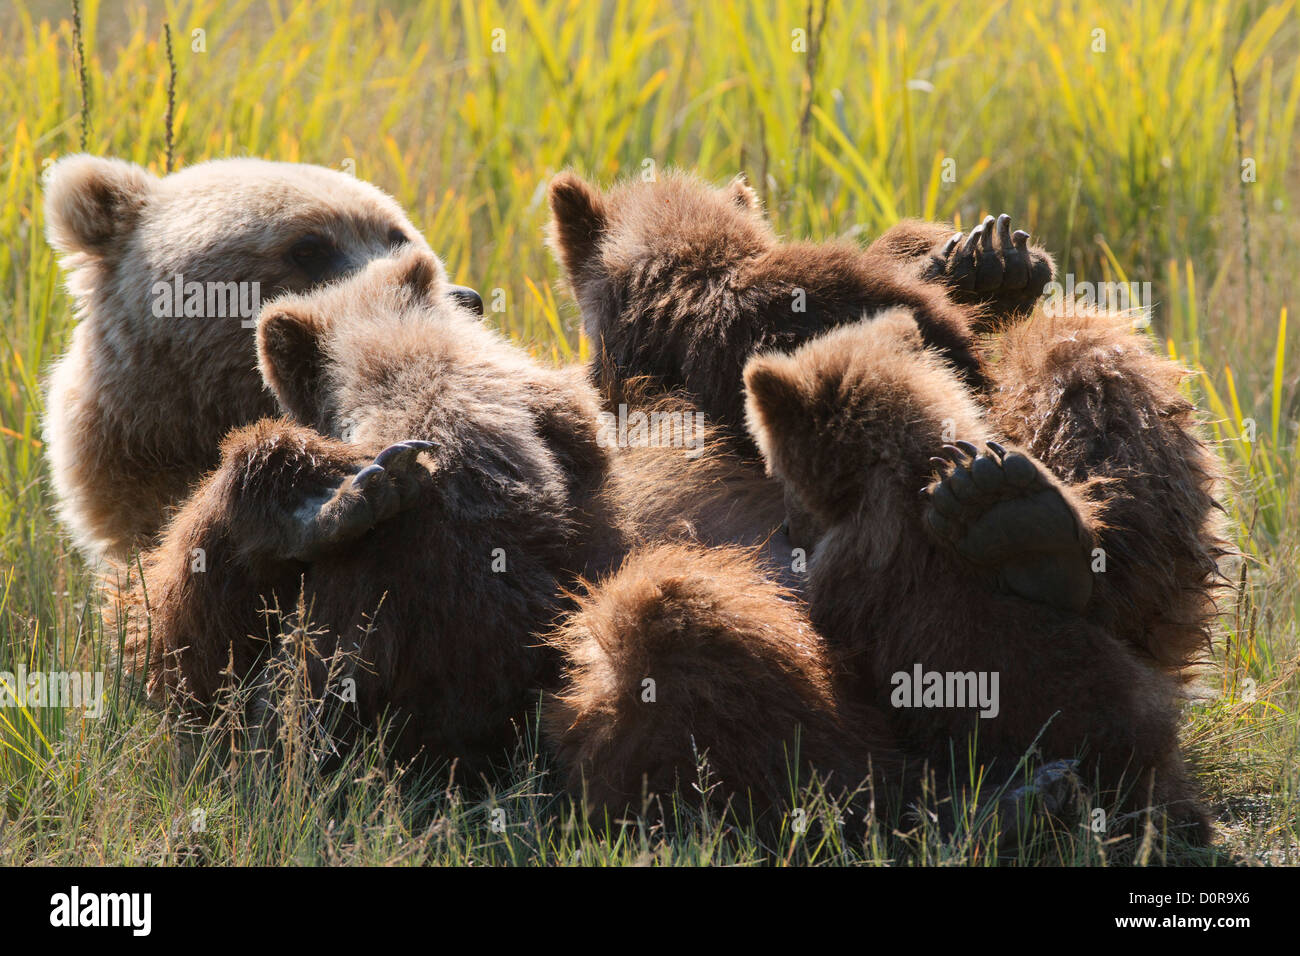 Siembre con triplete marrón o Grizzly Bear primavera cubs, Lake Clark National Park, Alaska. Imagen De Stock